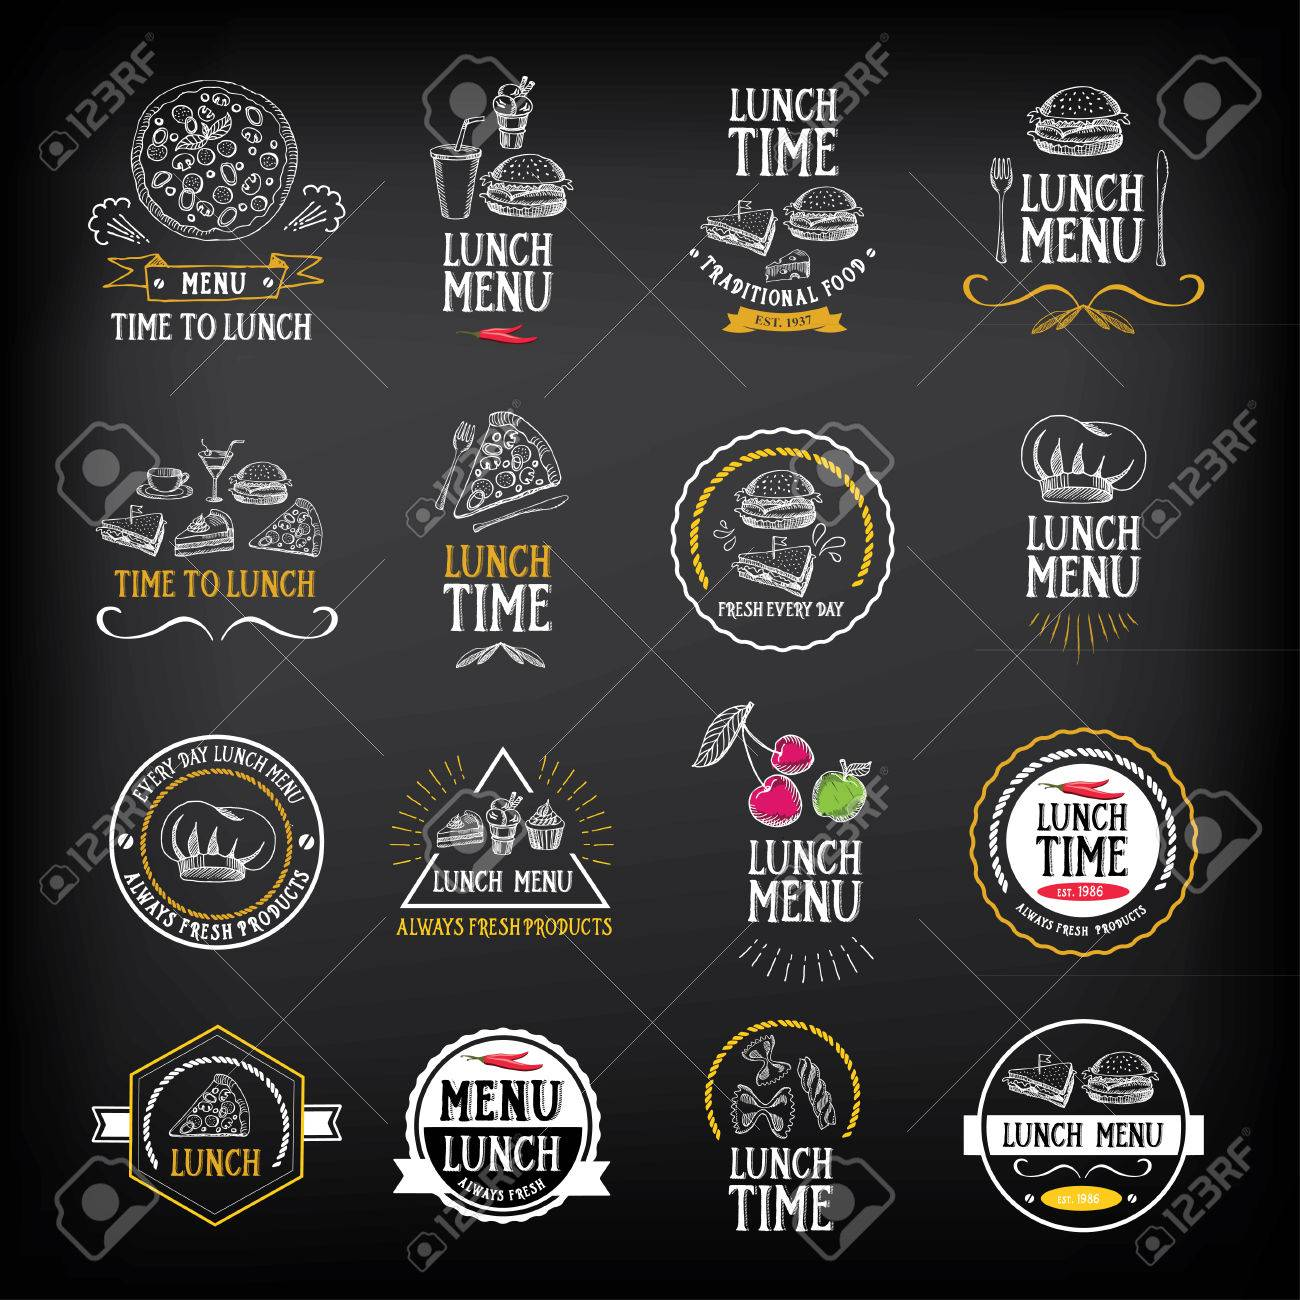 lunch menu logo and